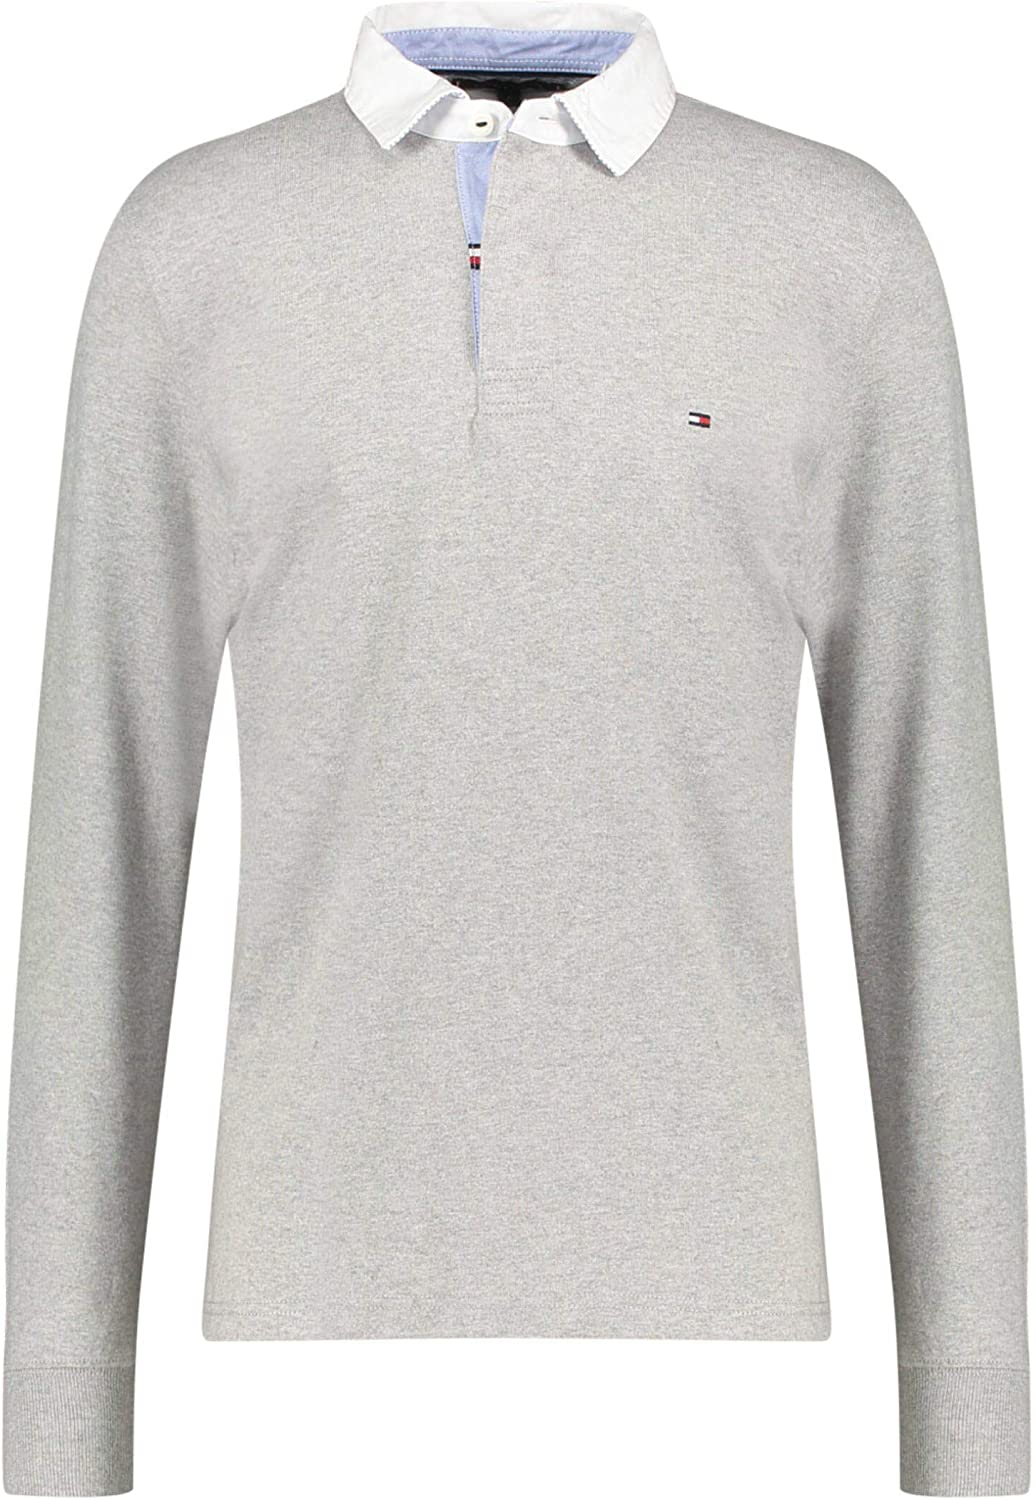 Tommy Hilfiger Polo Iconic Rugby Gris para Hombre x-Large Gris ...